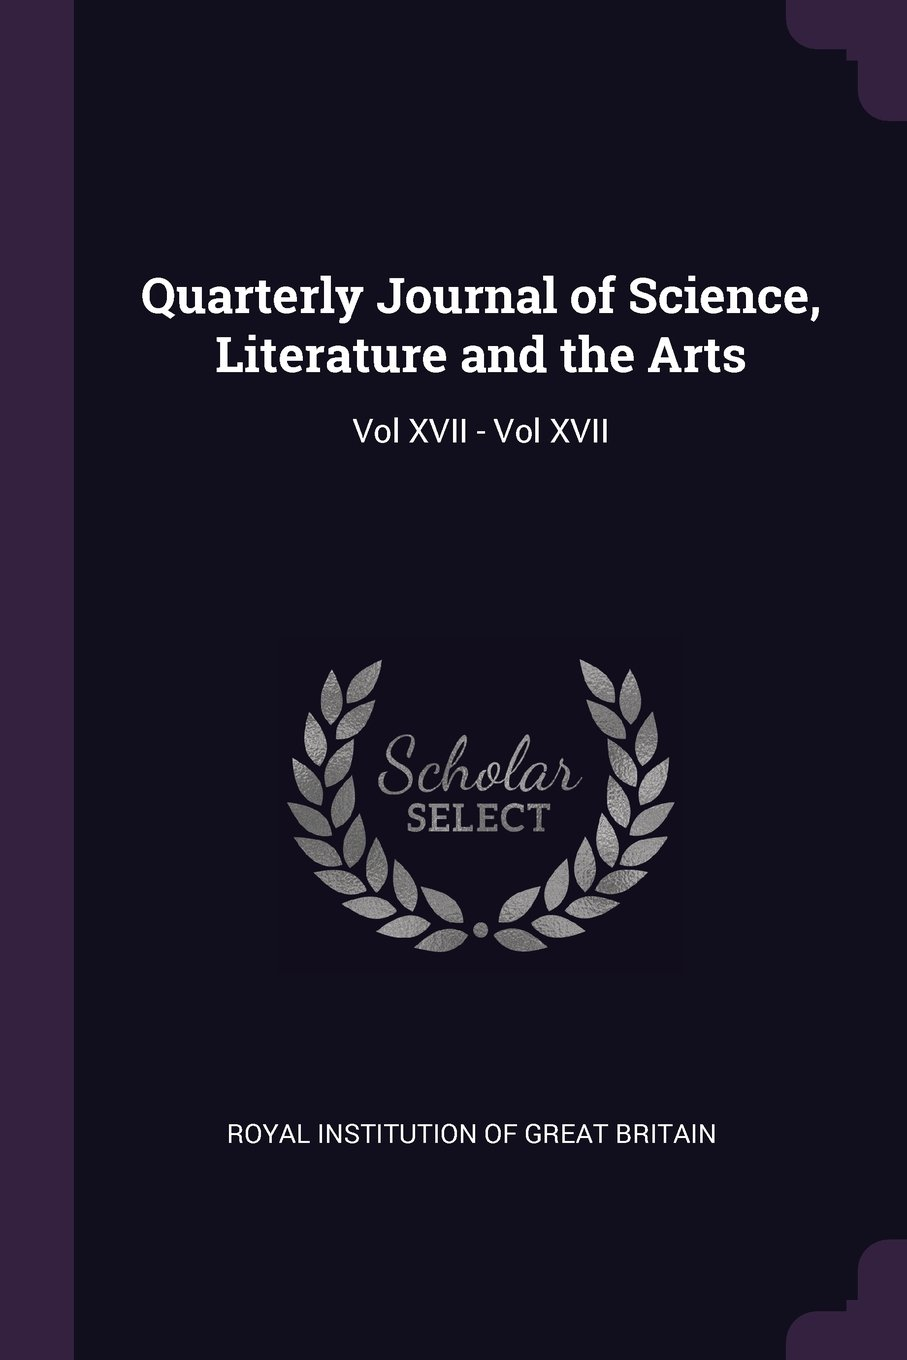 Quarterly Journal of Science, Literature and the Arts: Vol XVII - Vol XVII ebook